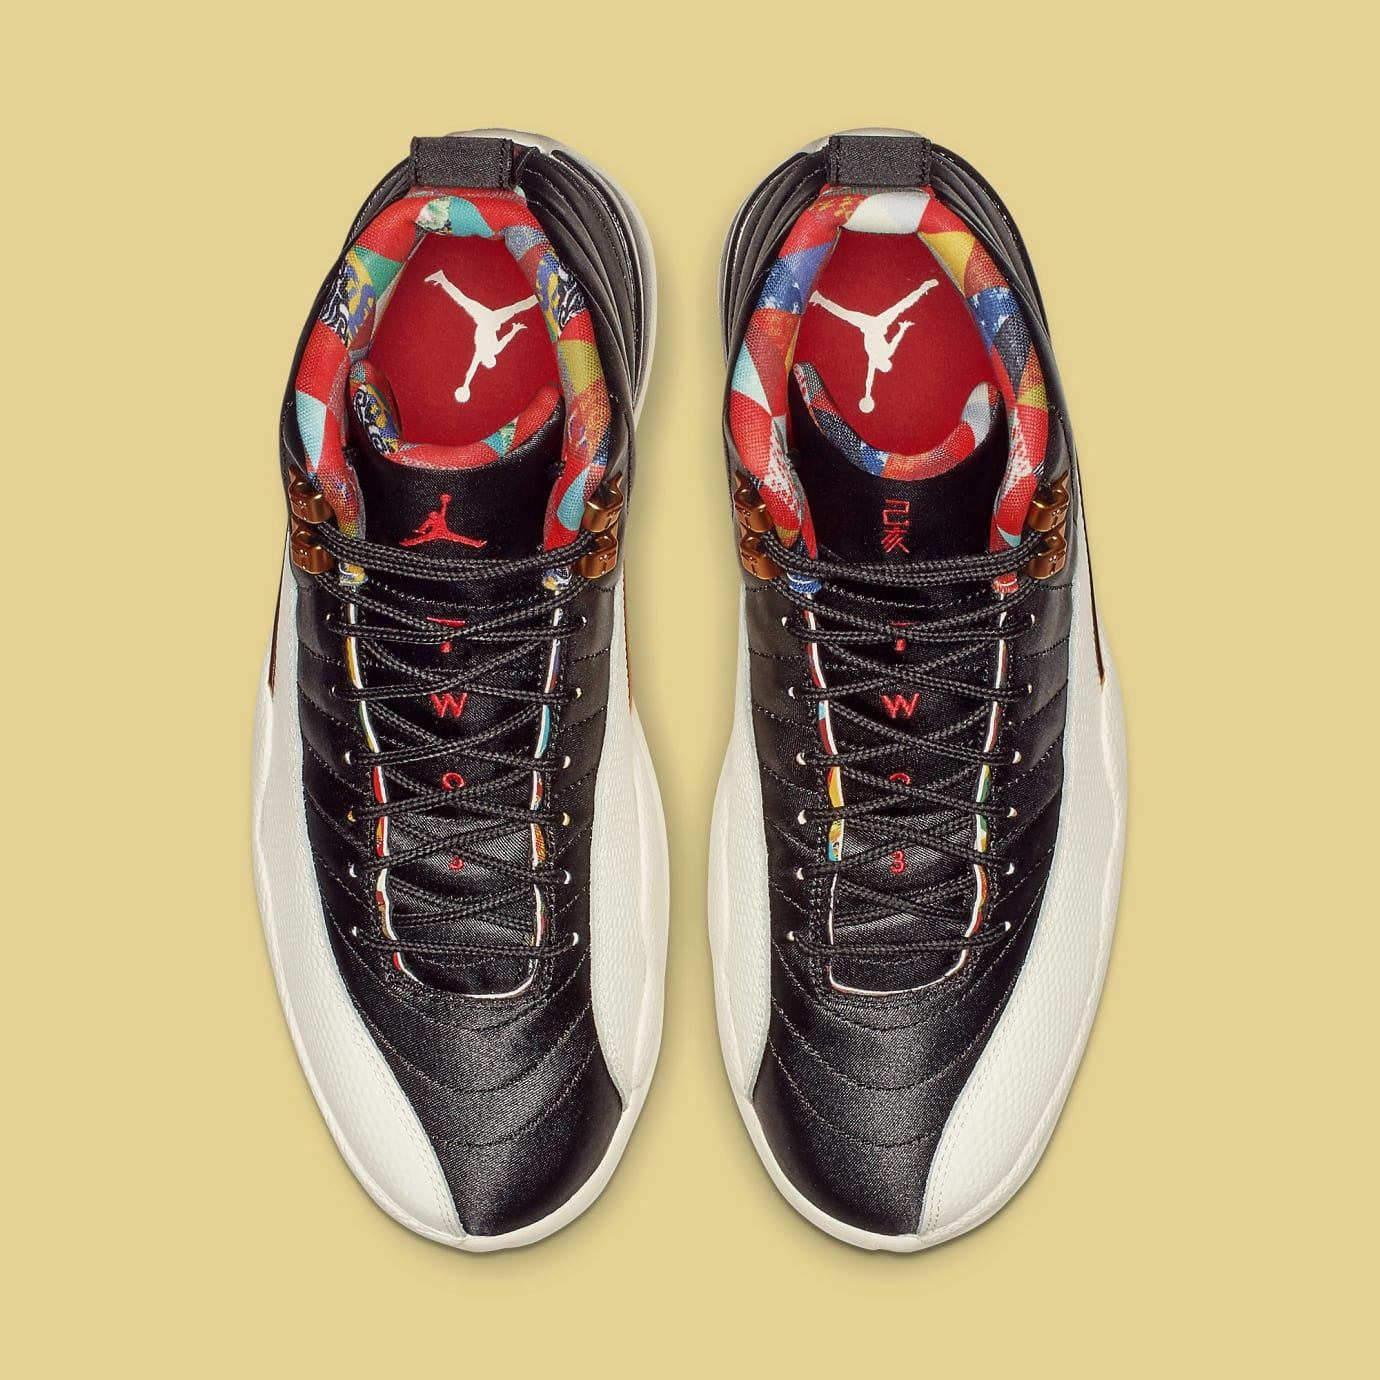 63092cfb2ec9 Image via Nike Air Jordan 12